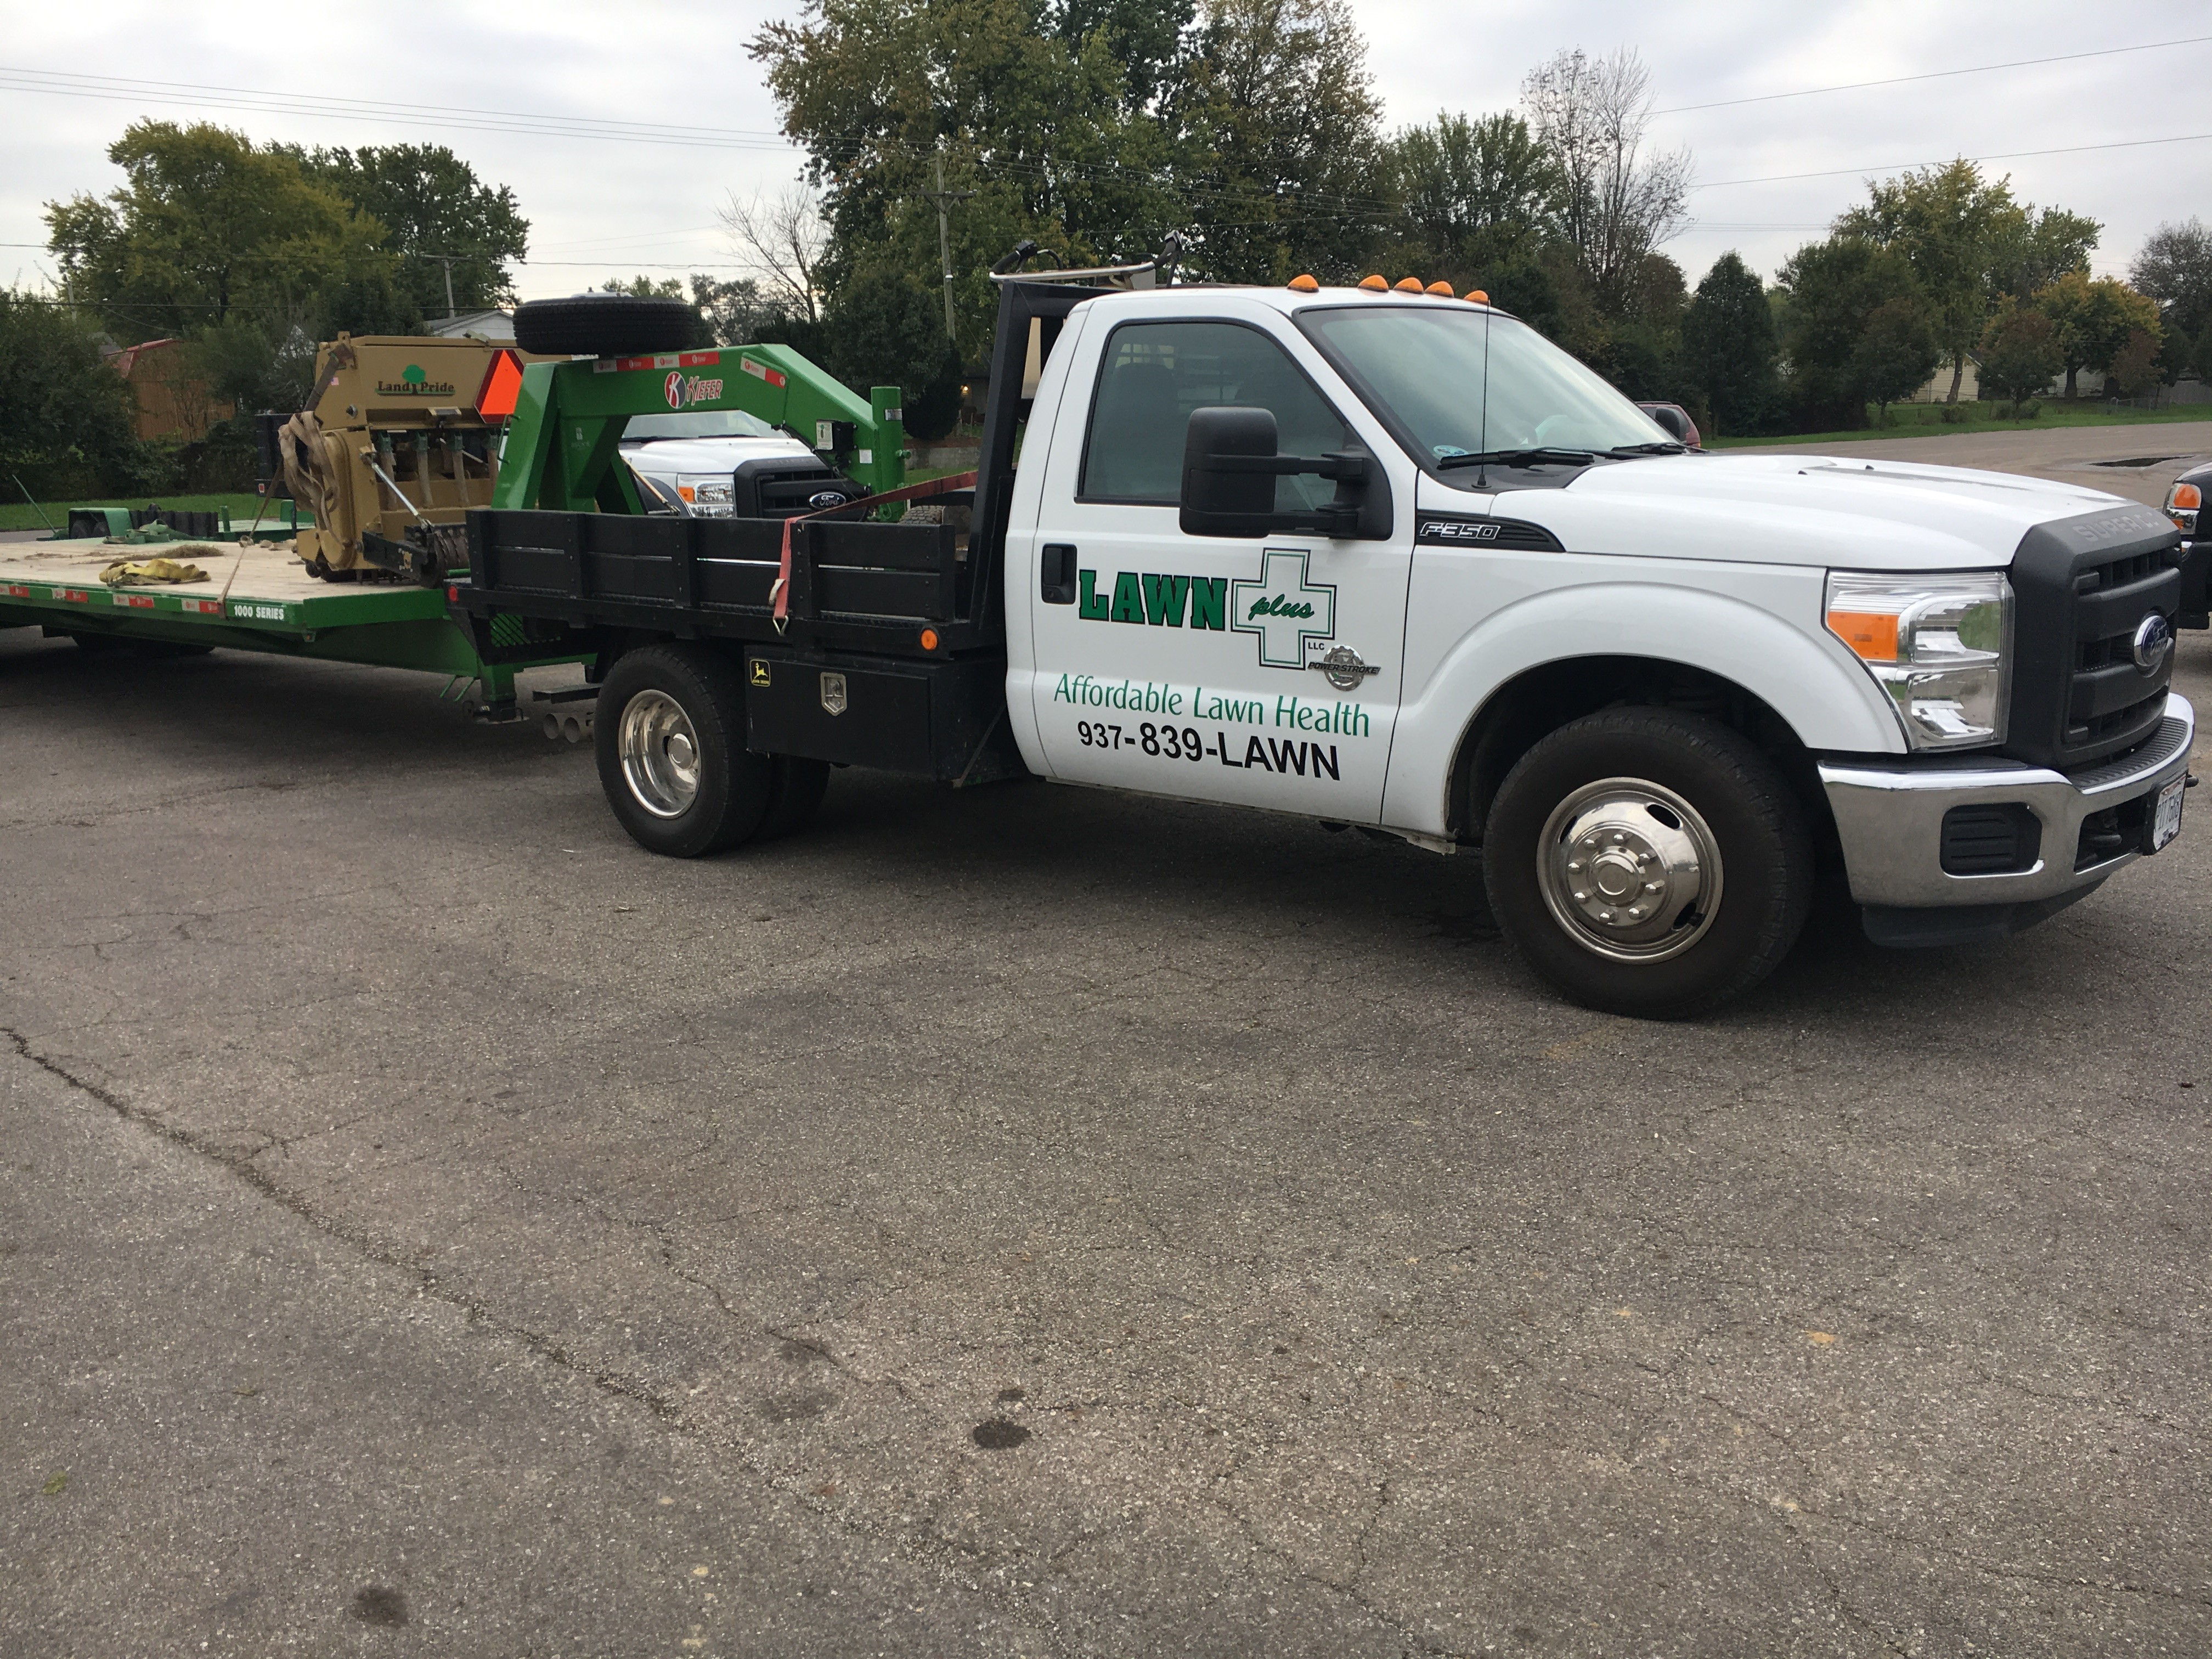 After vandals ruin pee wee football field, lawn company fixes it free of charge (WKEF/WRGT)